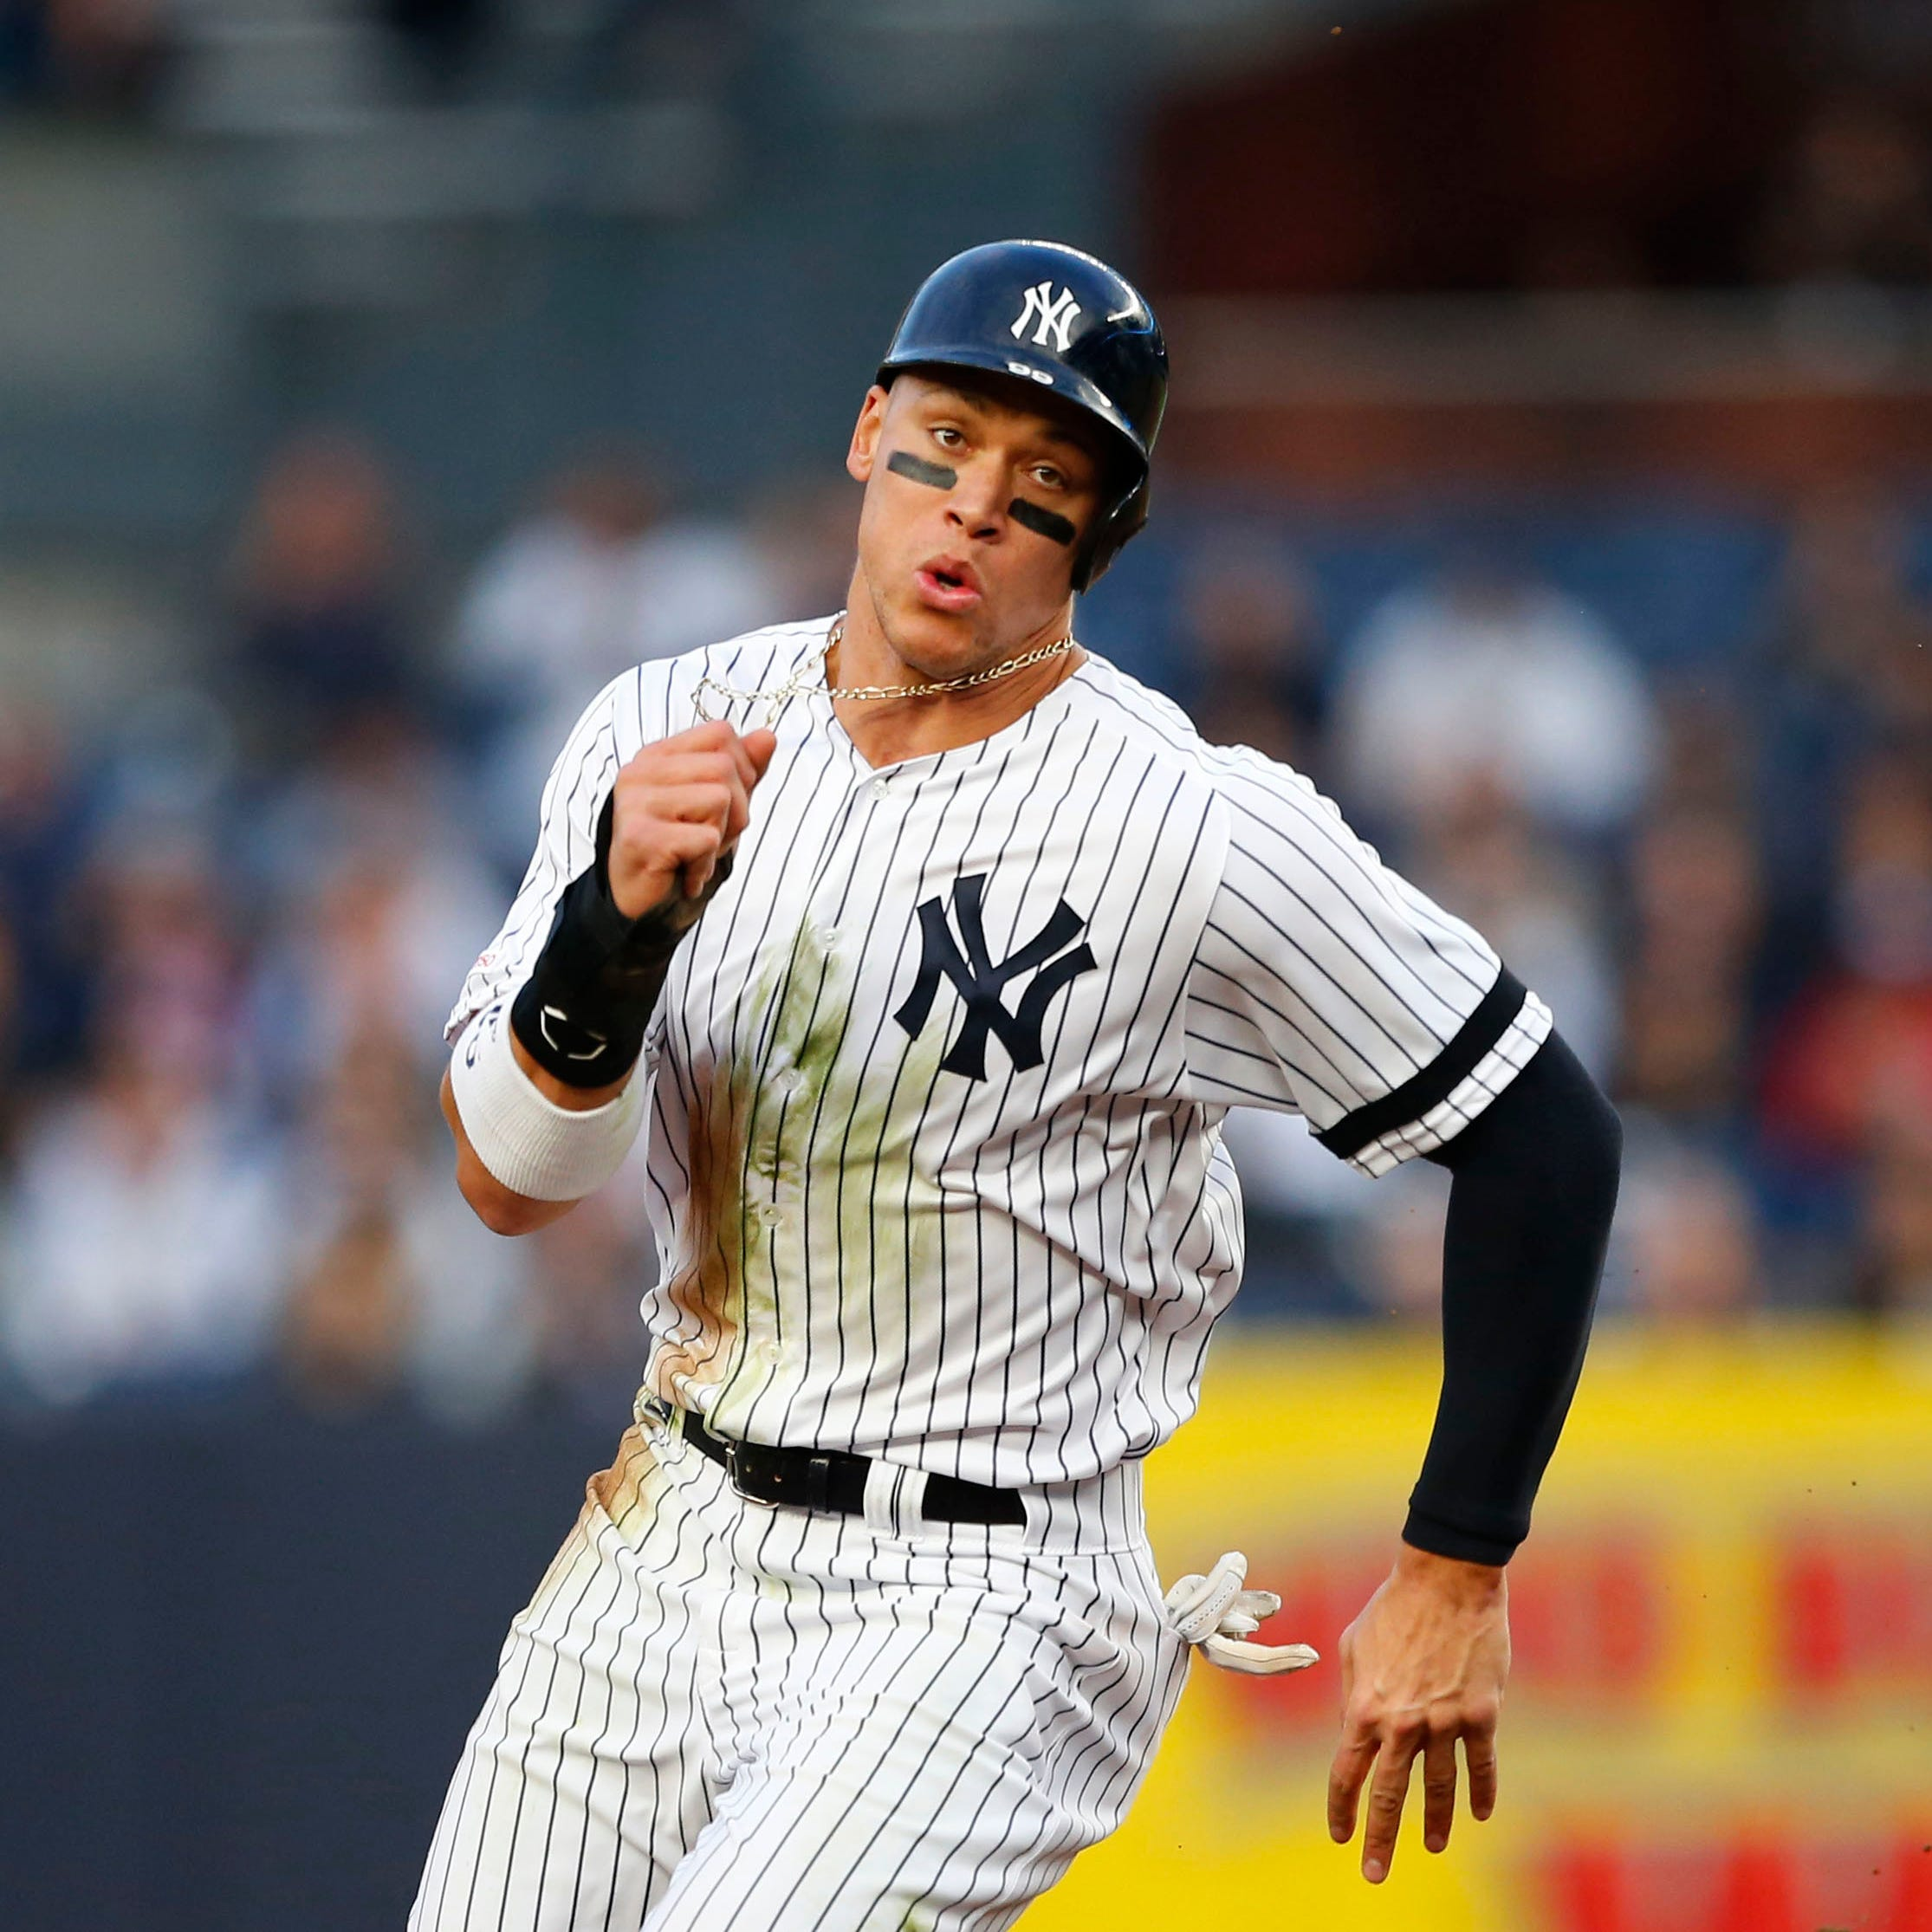 New York Yankees, Kansas City Royals announce lineups for Friday's game